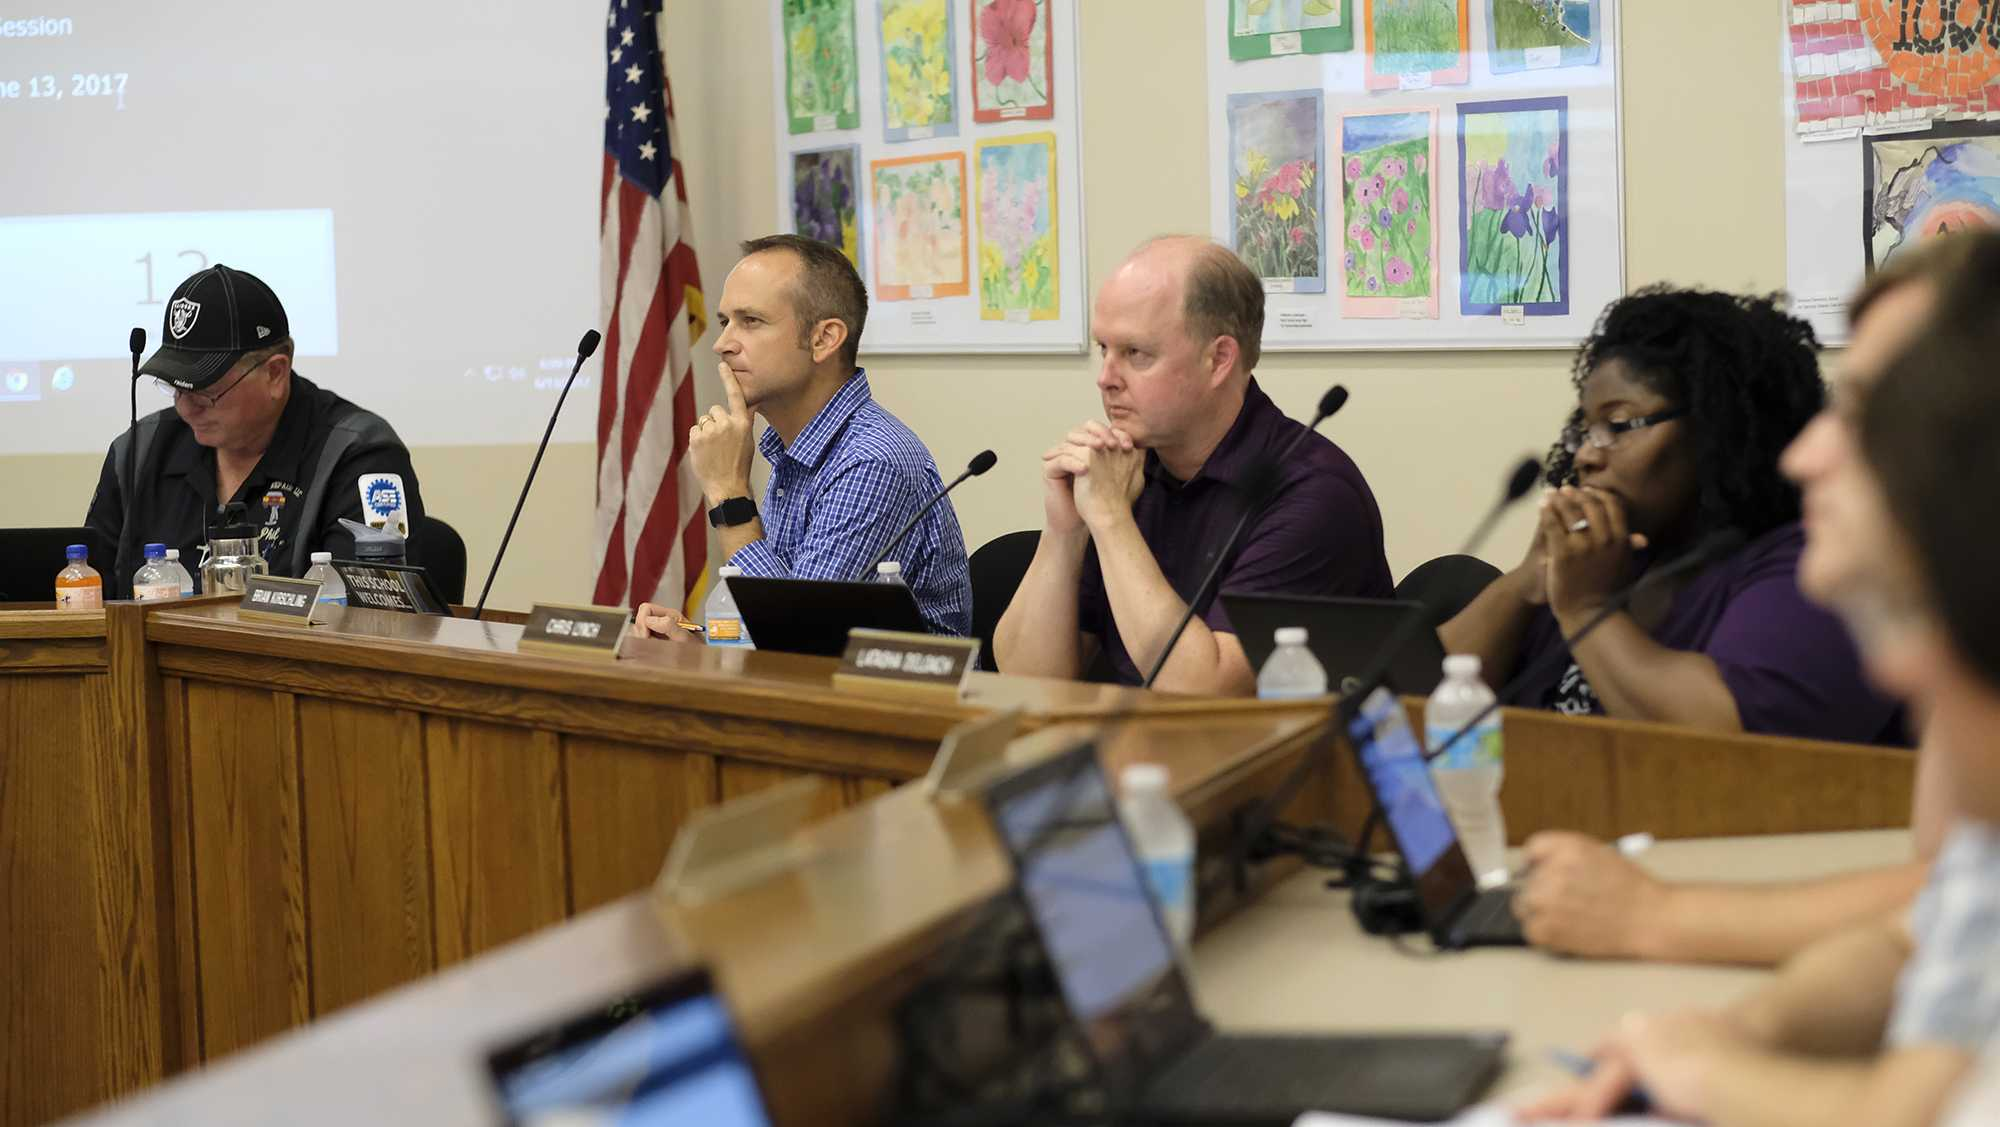 Members of the board listen as a member of the public adresses the Iowa City School Board on Tuesday June 13, 2017. (The Daily Iowan/Nick Rohlman)